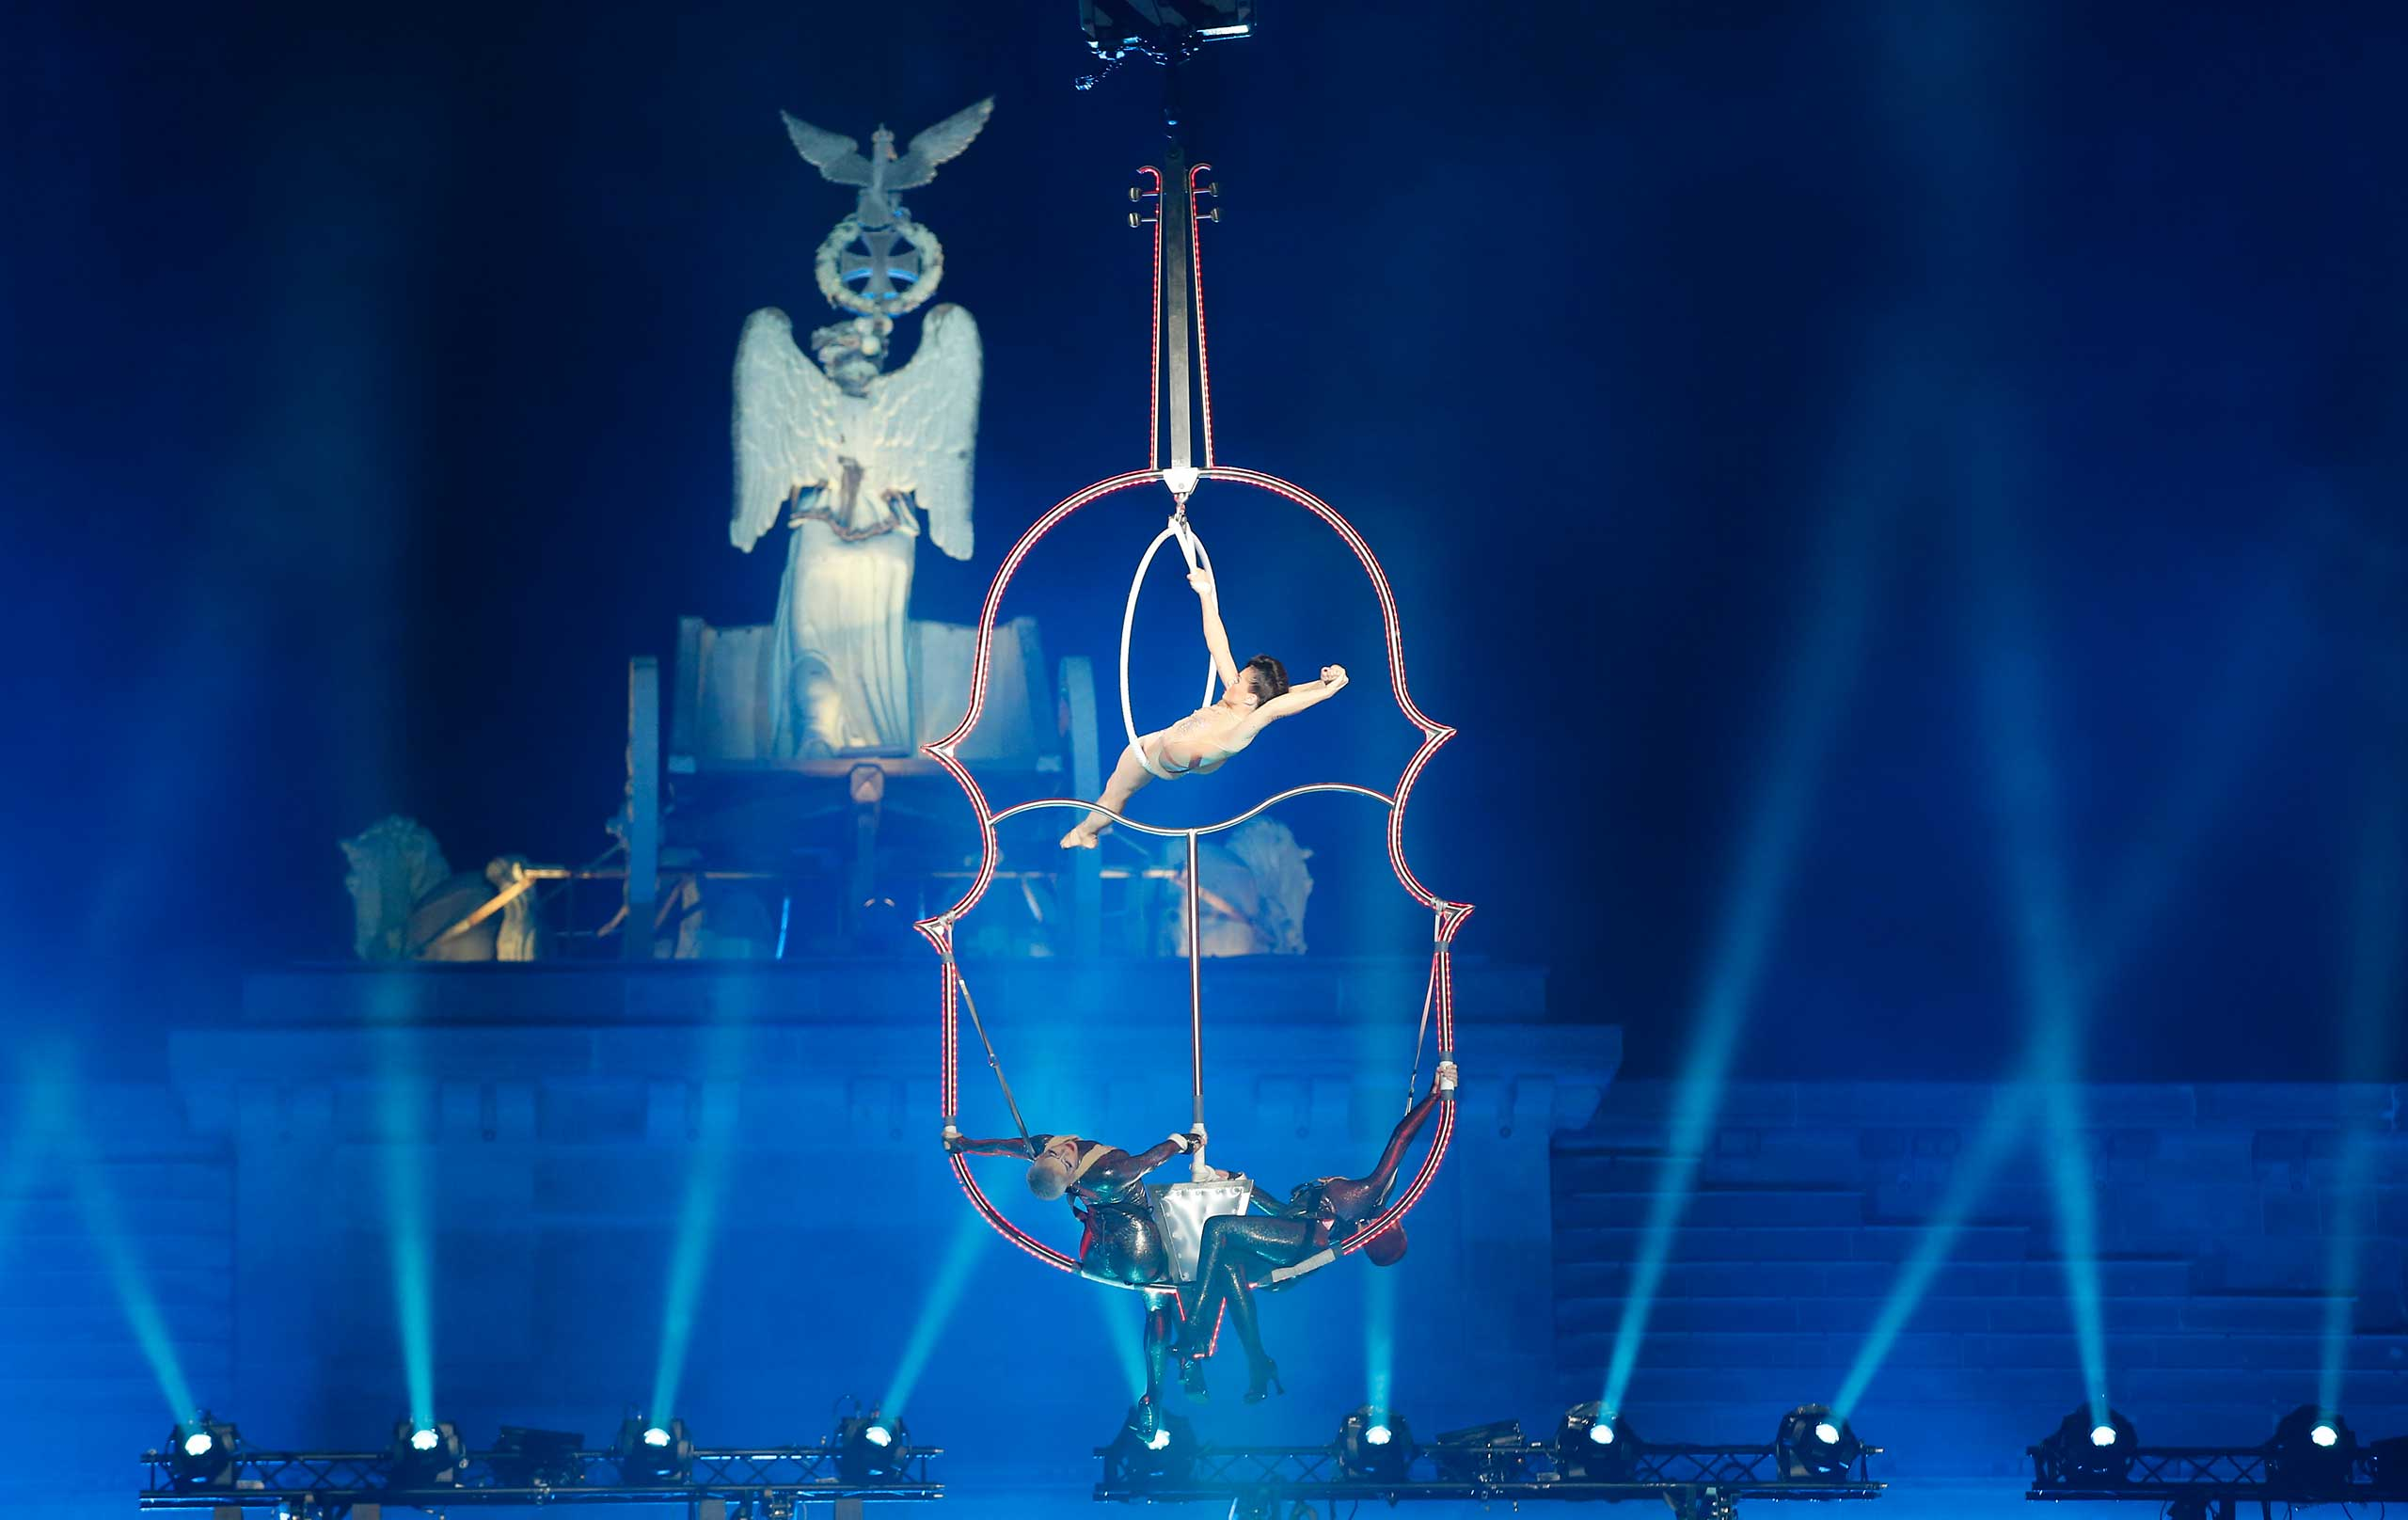 An acrobatic artist performs in front of the Quadriga on top of the Brandenburg Gate in Berlin, November 9, 2014.